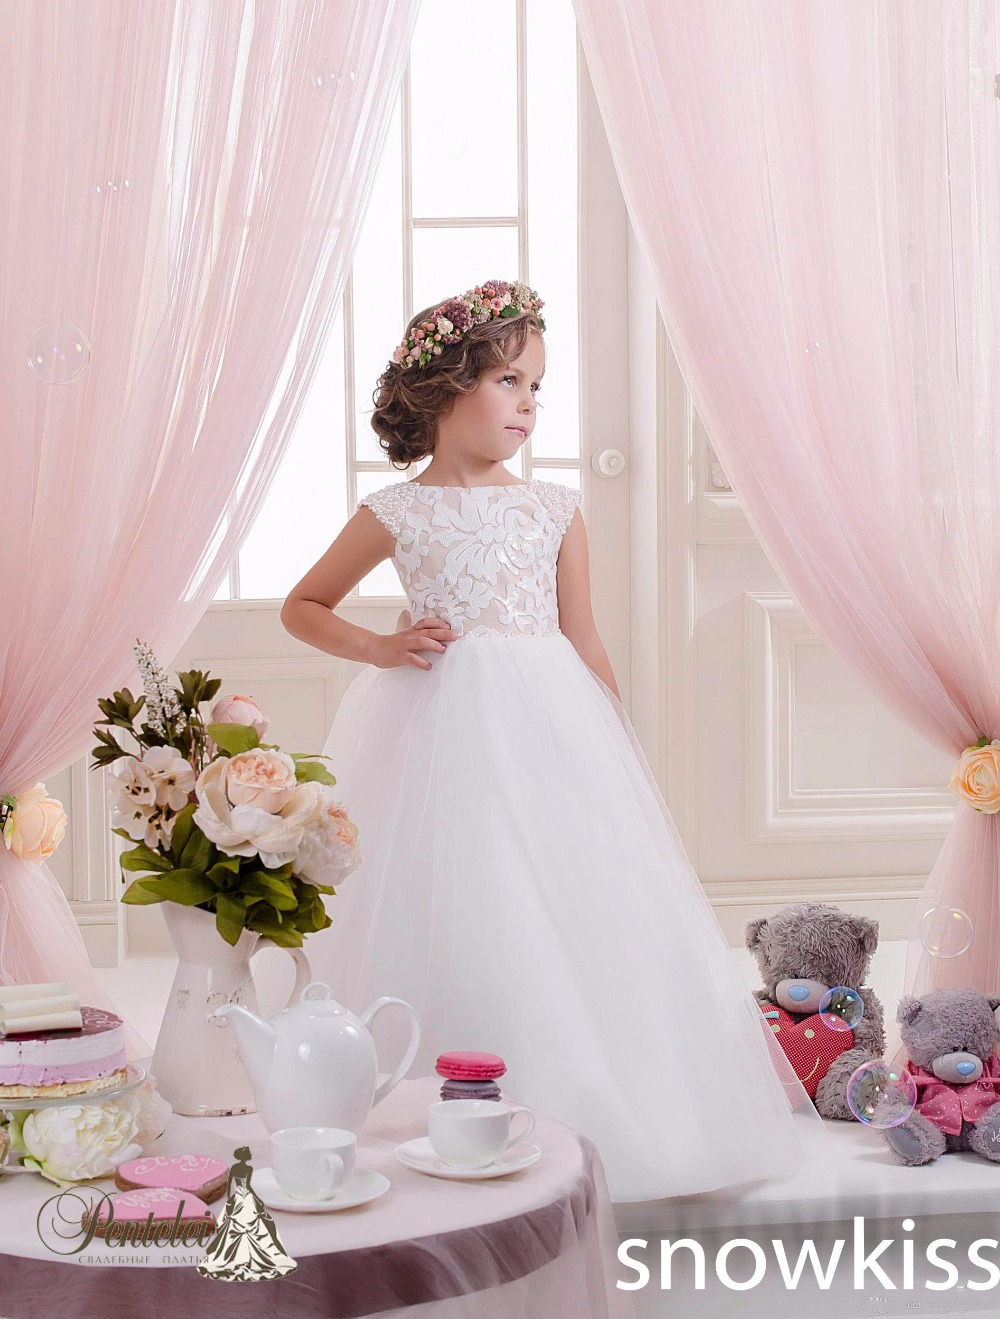 White/Ivory Lace Flower Girl Dresses for Birthday wedding party formal occasions first communion Princess Tulle Ball Gowns new white ivory flower girl dresses for wedding 3d flowers puffy tulle with big bow girls first communion gowns